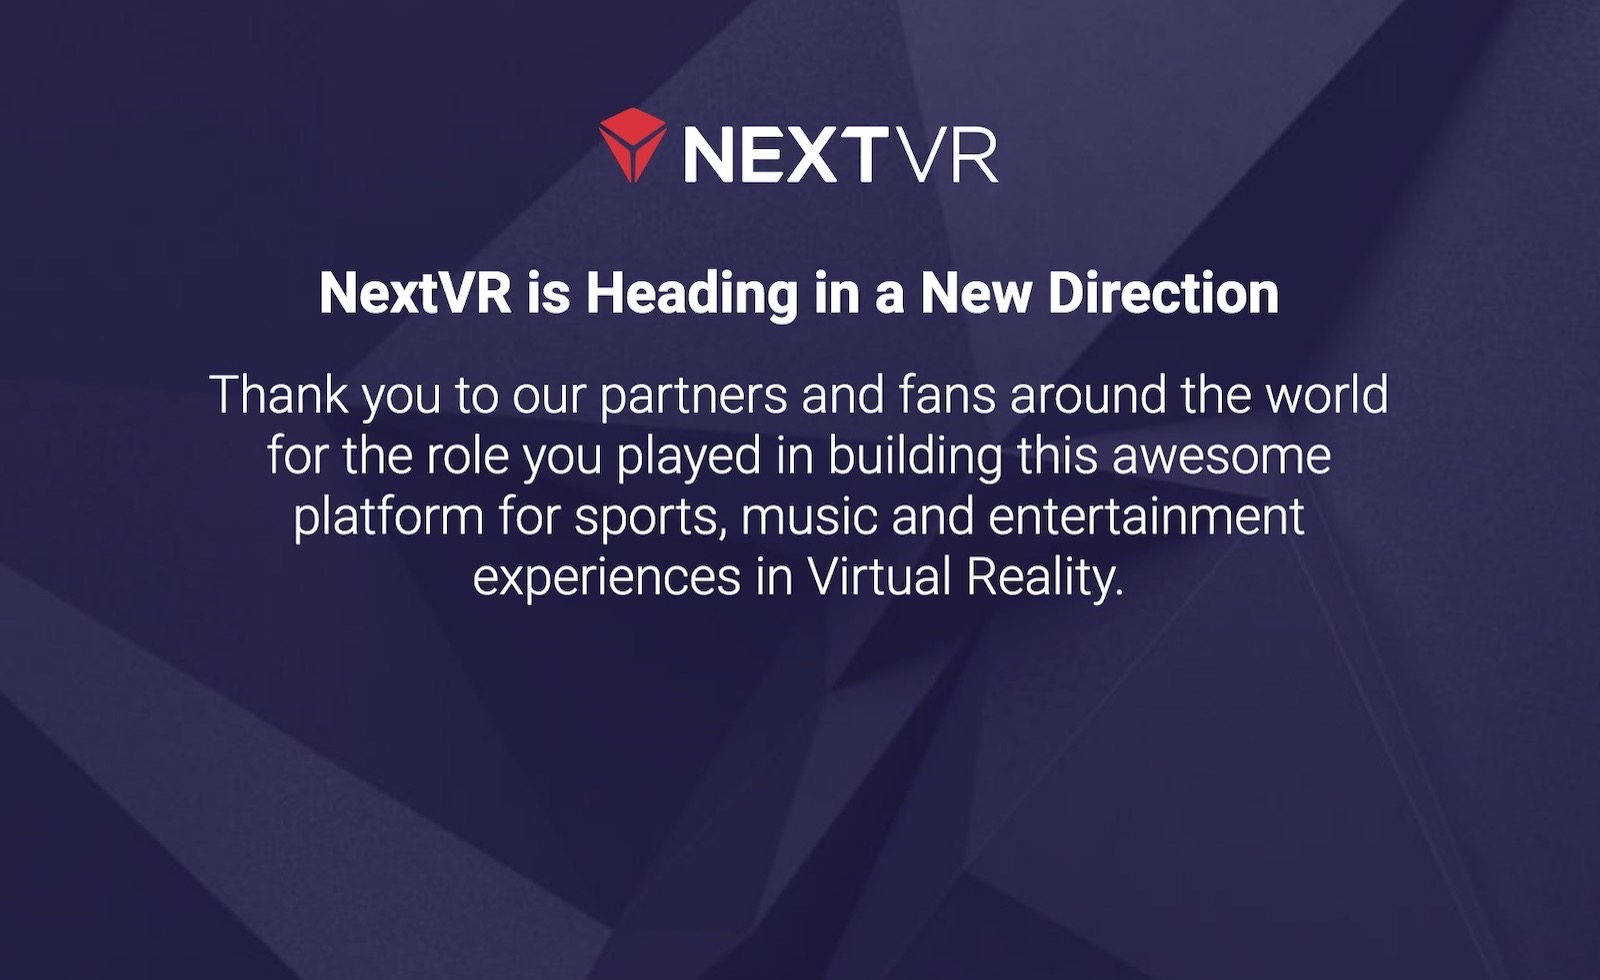 Next vr bought by apple